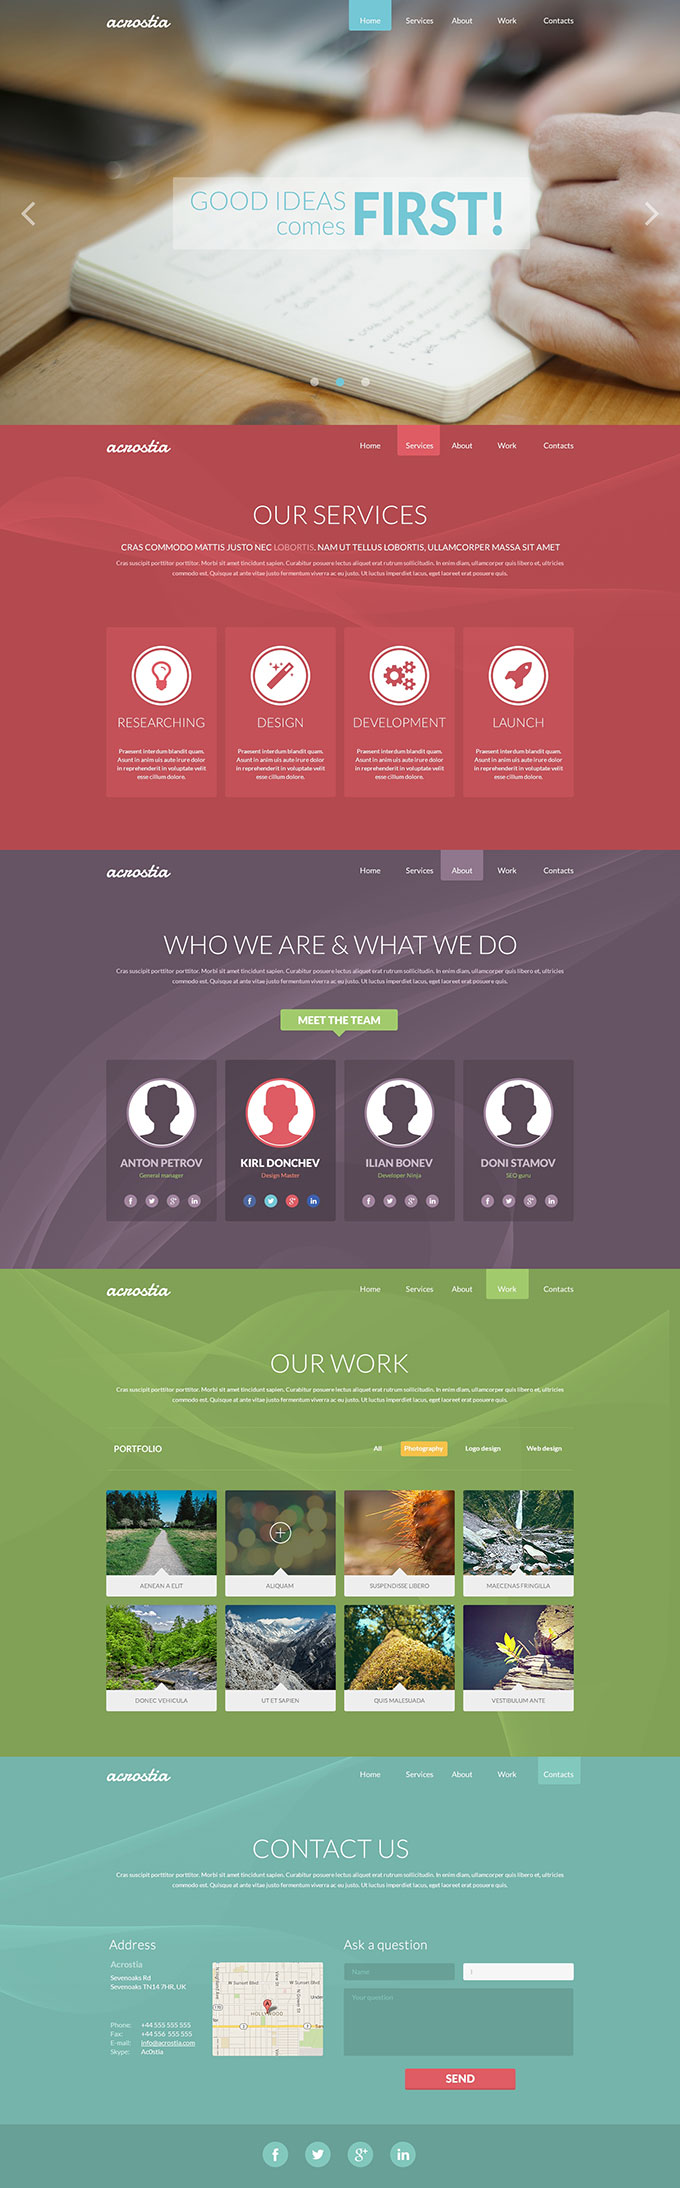 acrostia_onepage_template_by_outlinez